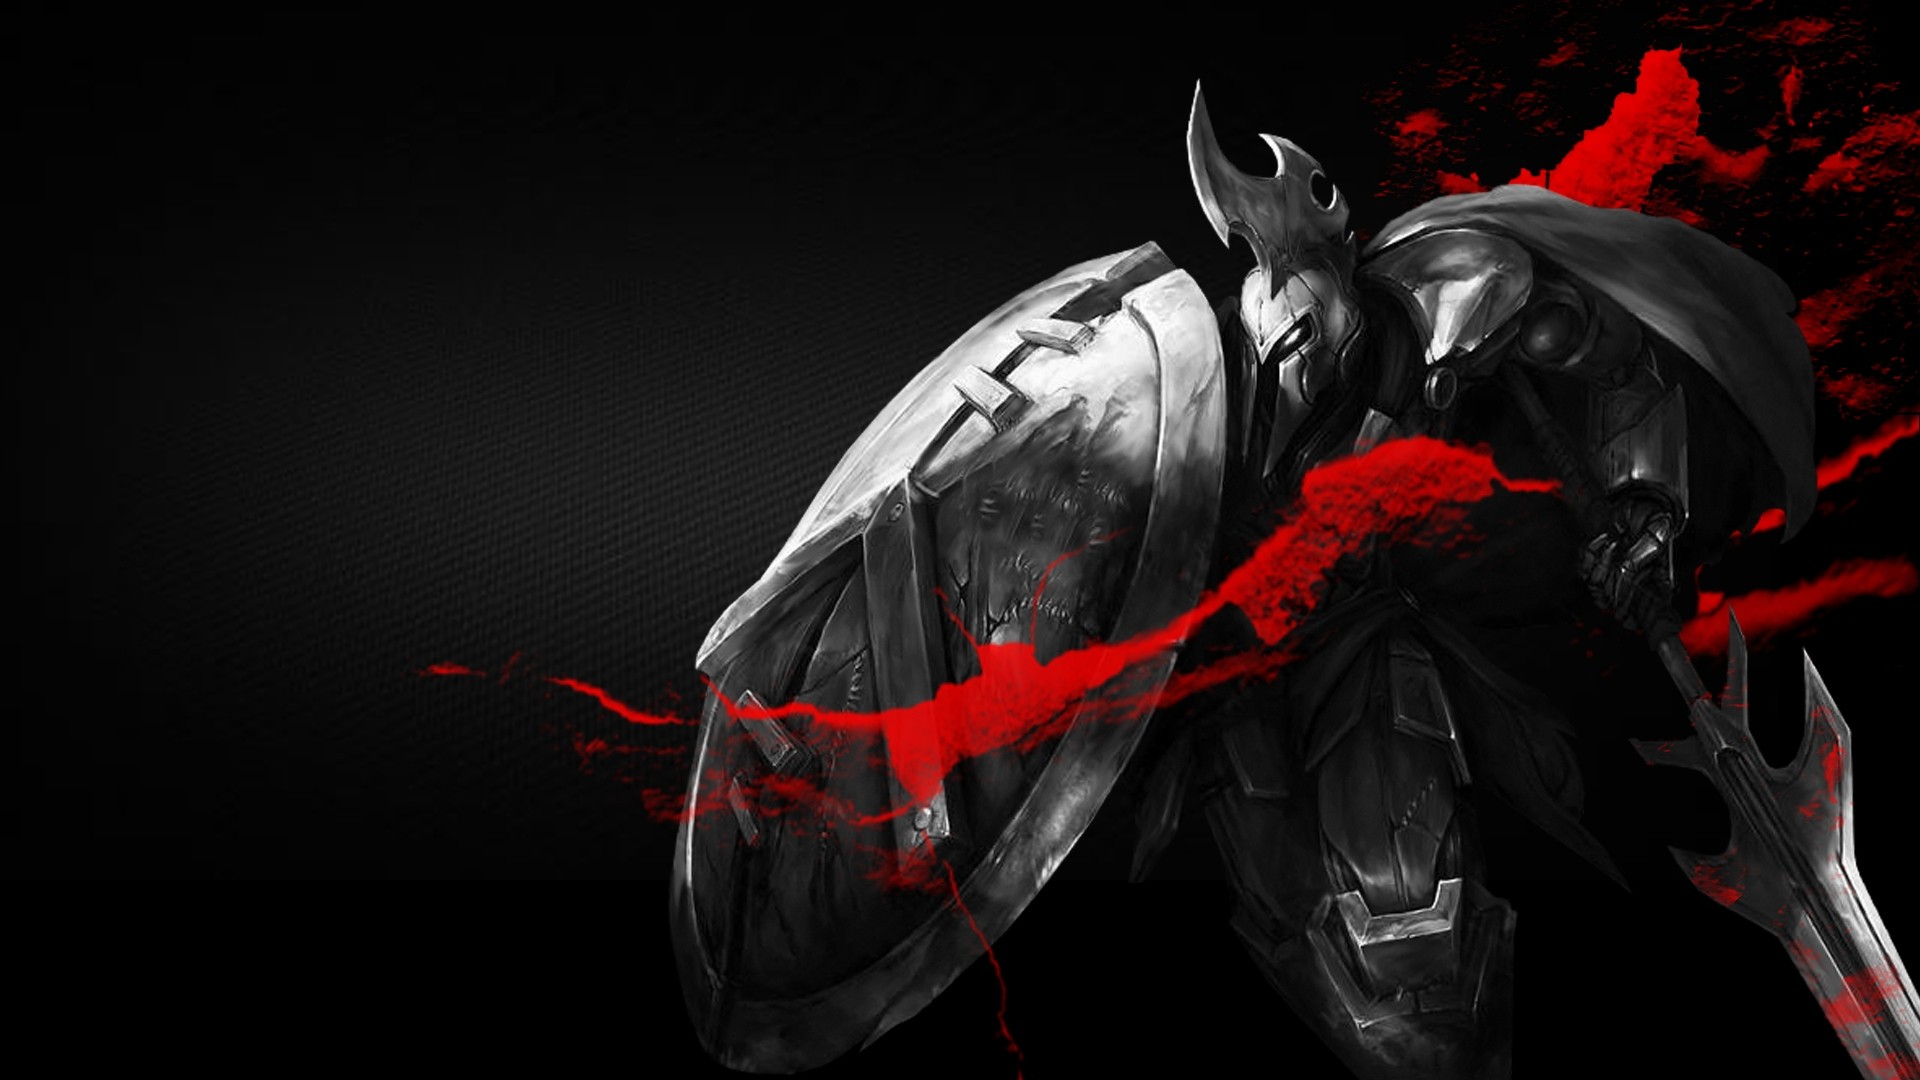 68+ Badass wallpapers ·① Download free awesome HD ...